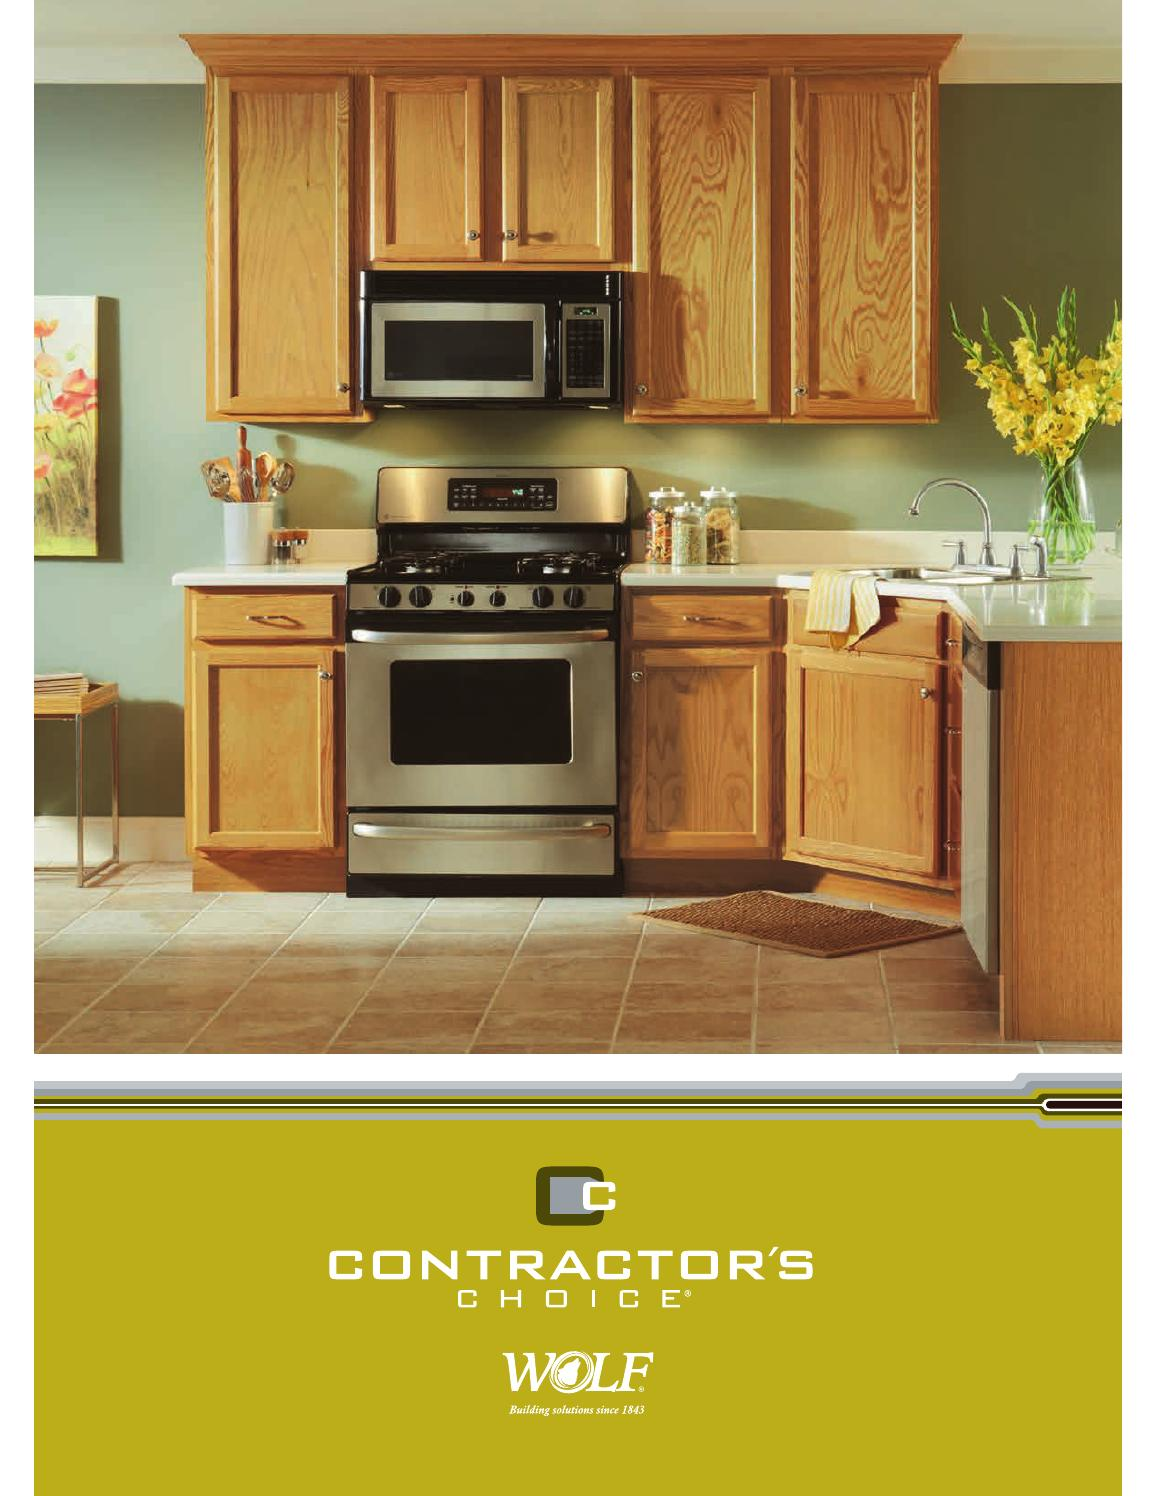 Contractoru0027s Choice Brochure   4 2015 By WOLF   Issuu